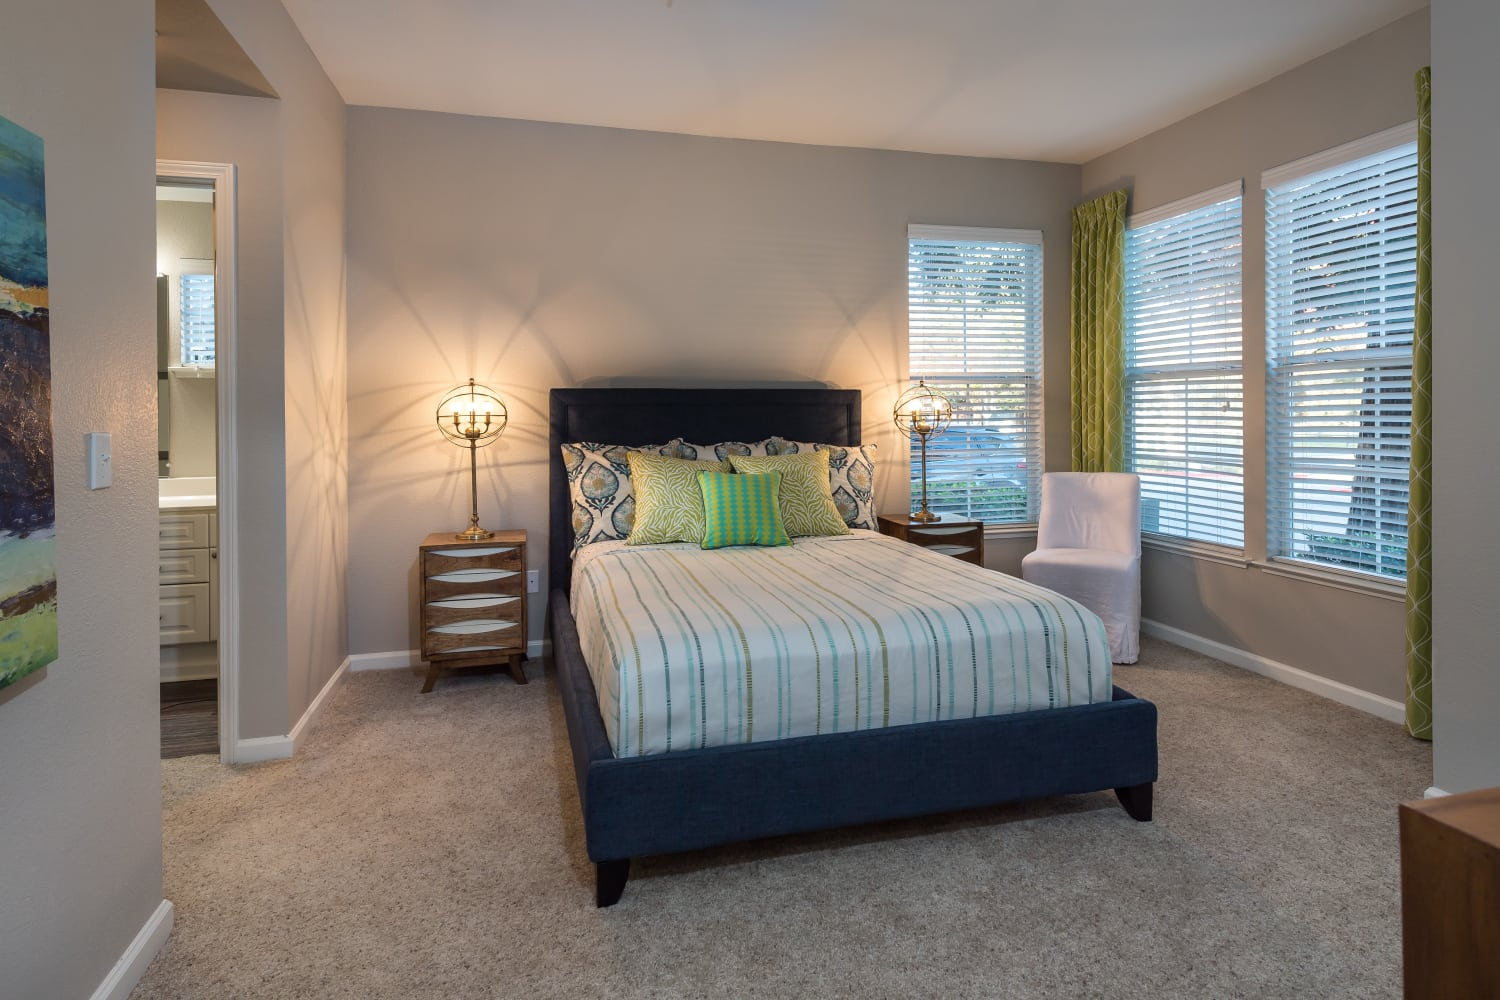 Bedroom at Nantucket Apartments in Santa Clara, California